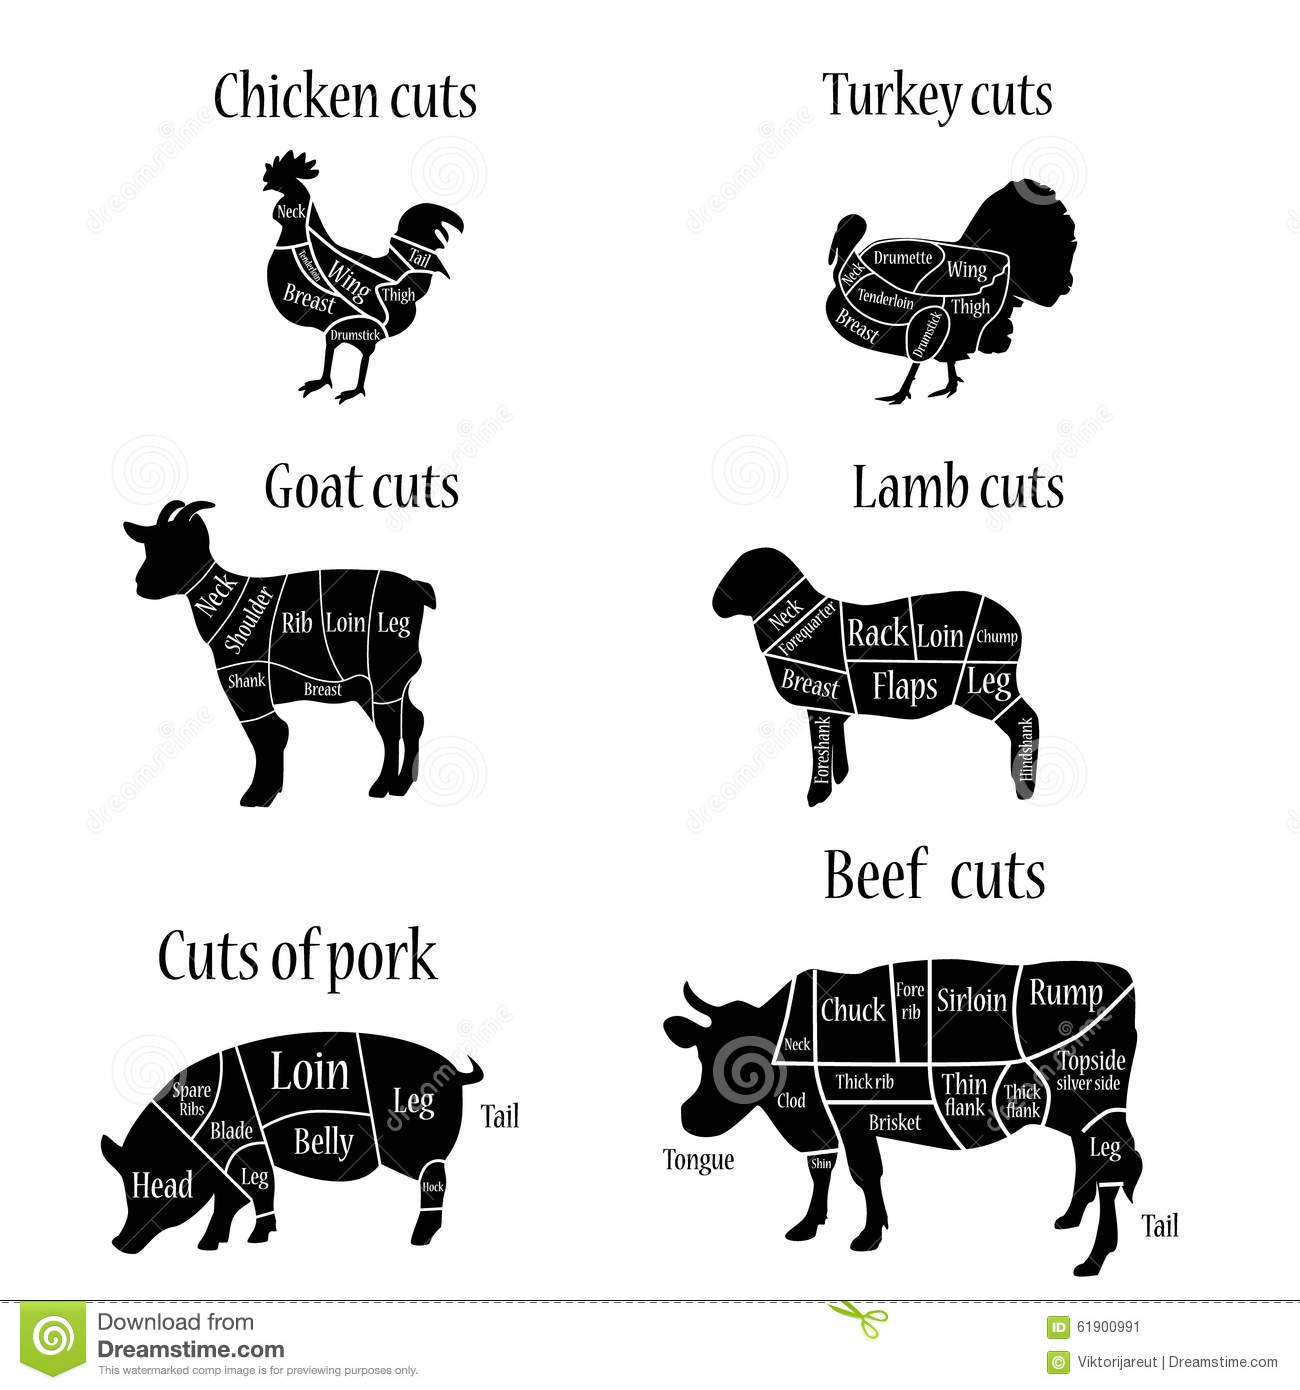 Stock Illustration Butcher Chart Vector Illustration Turkey Lamb Goat Chicken Cow Pork Cuts Diagramm Image61900991 on pork cuts guide